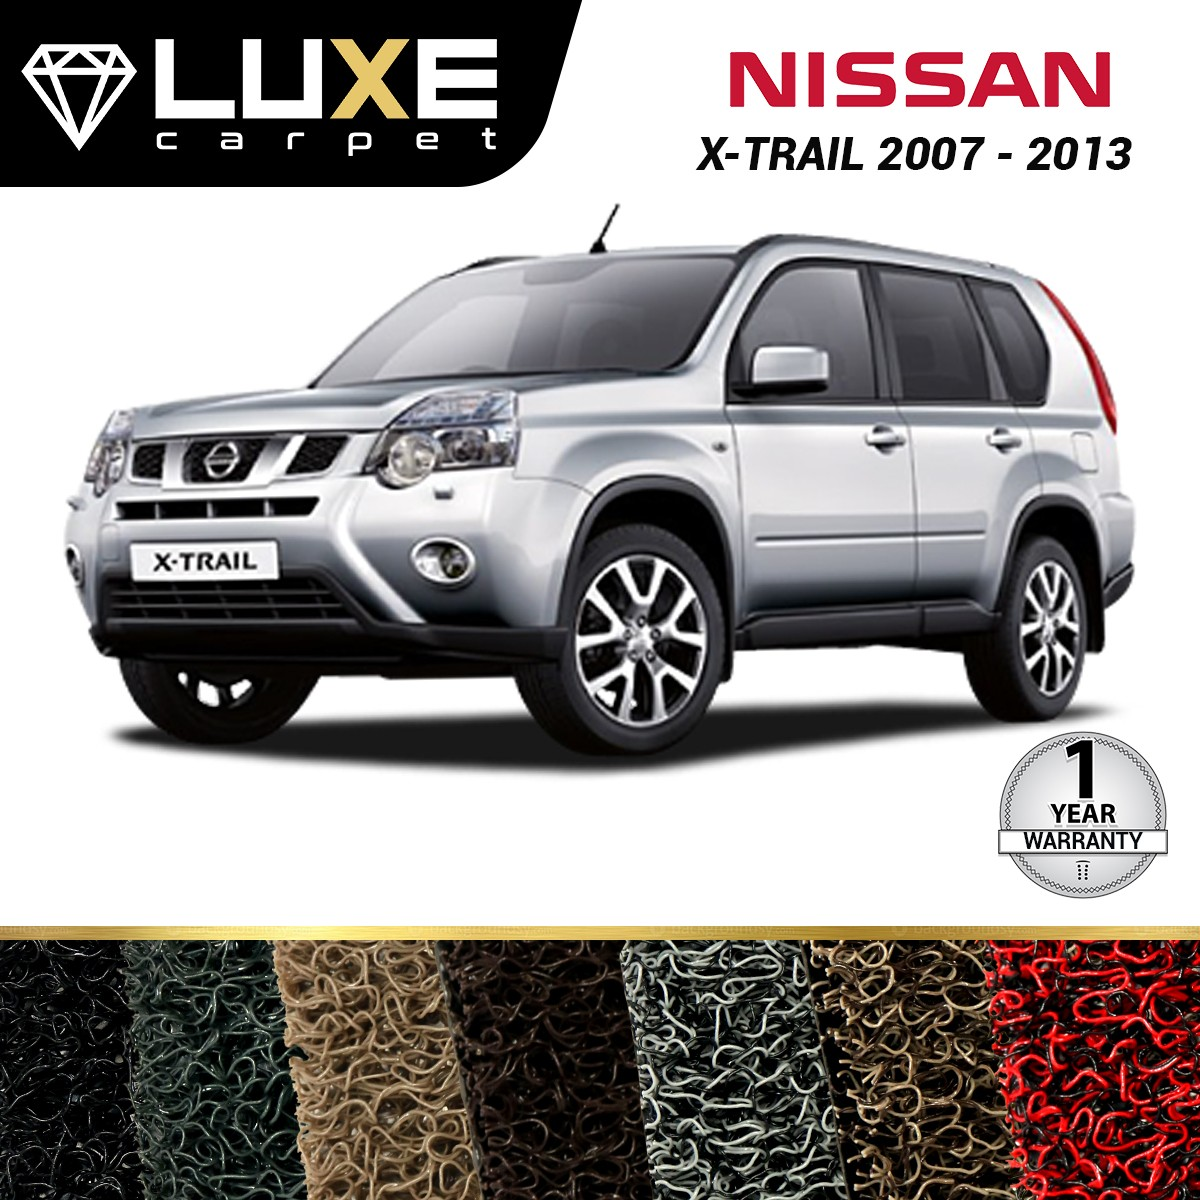 KARPET LUXE + BAGASI NISSAN XTRAIL 2007-2013 - GOLD SERIES